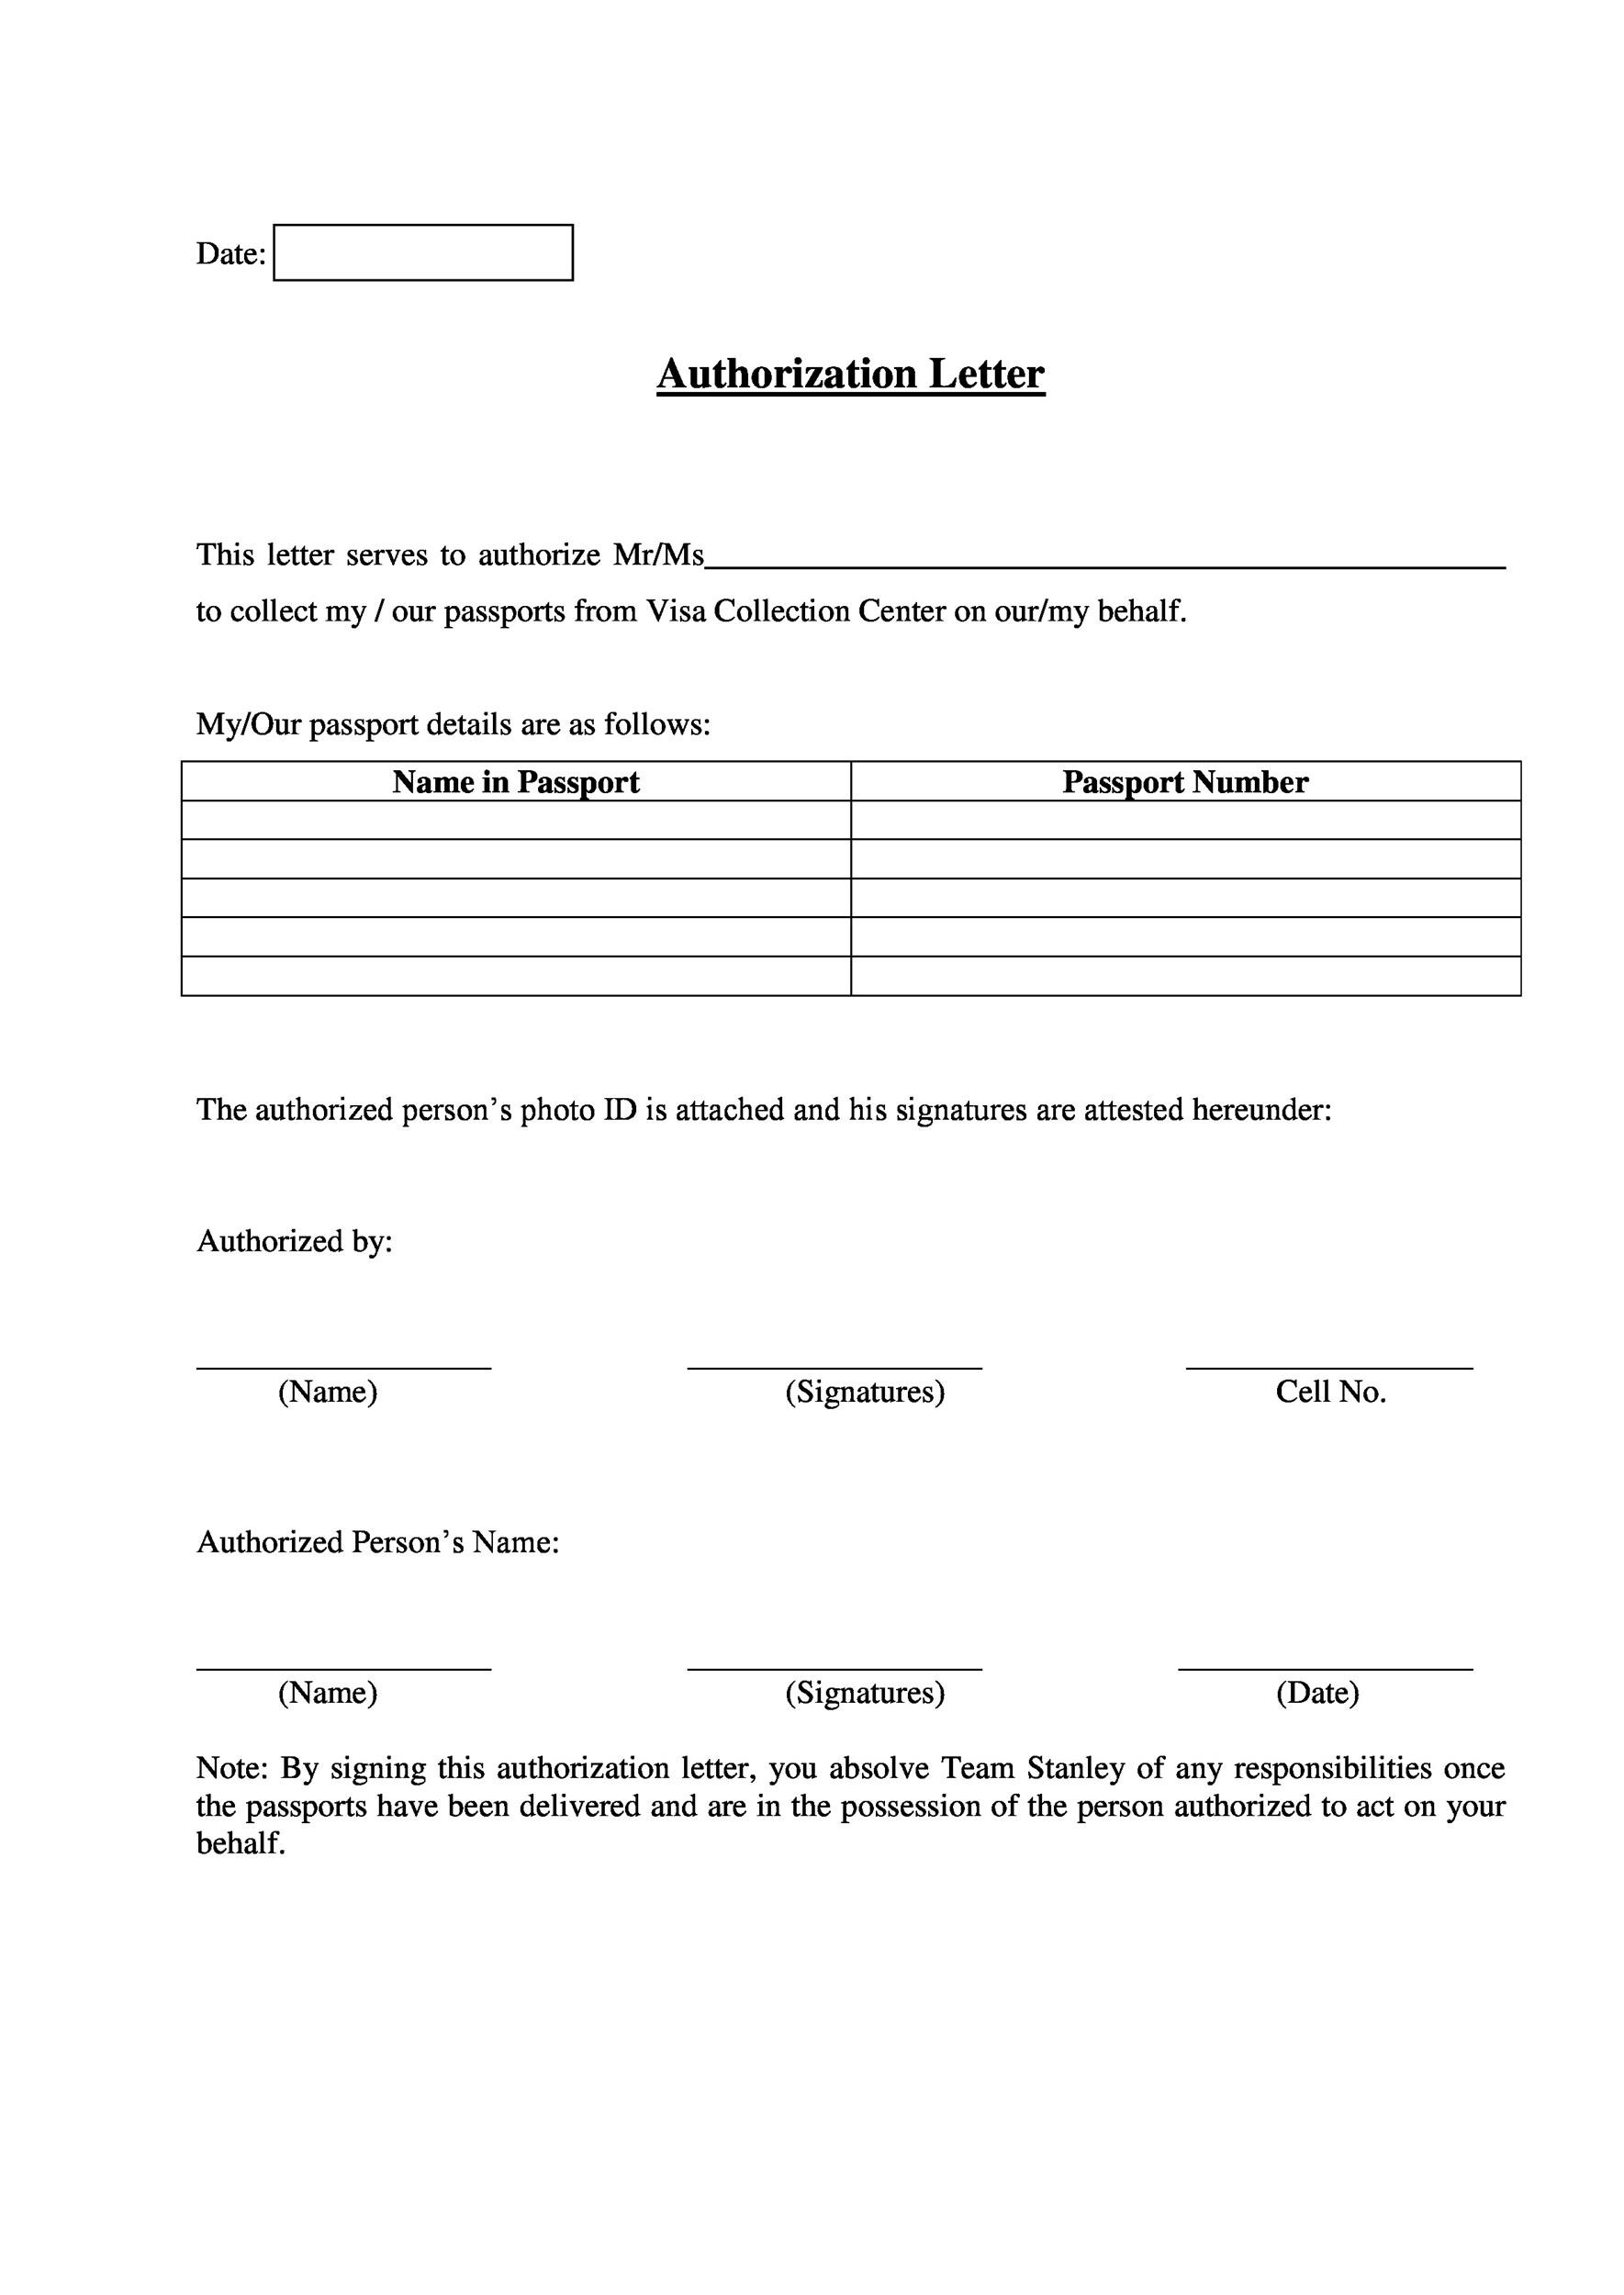 46 Authorization Letter Samples  Templates - Template Lab - authorization sample letter